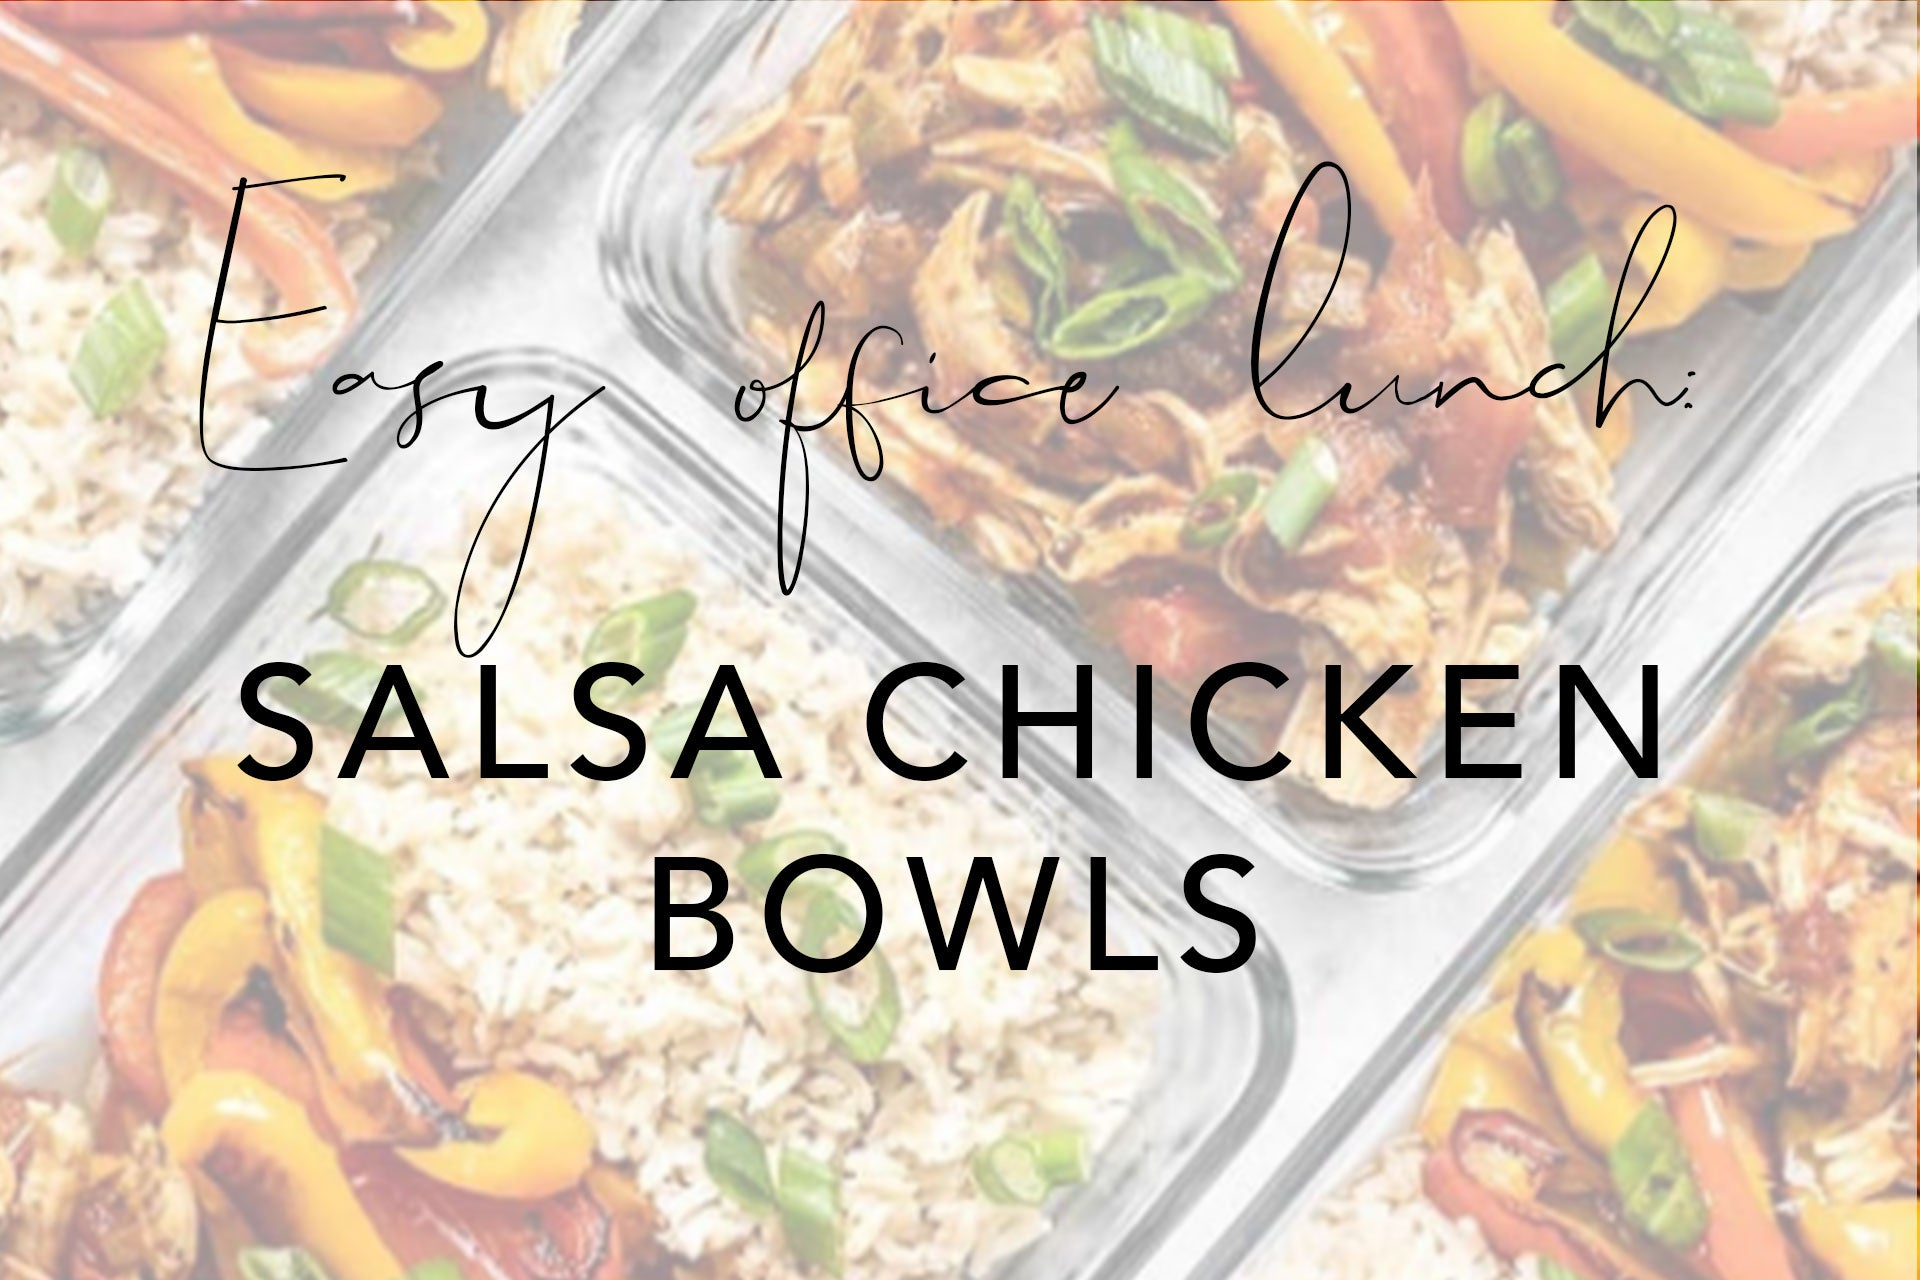 Header: Salsa Chicken Bowls